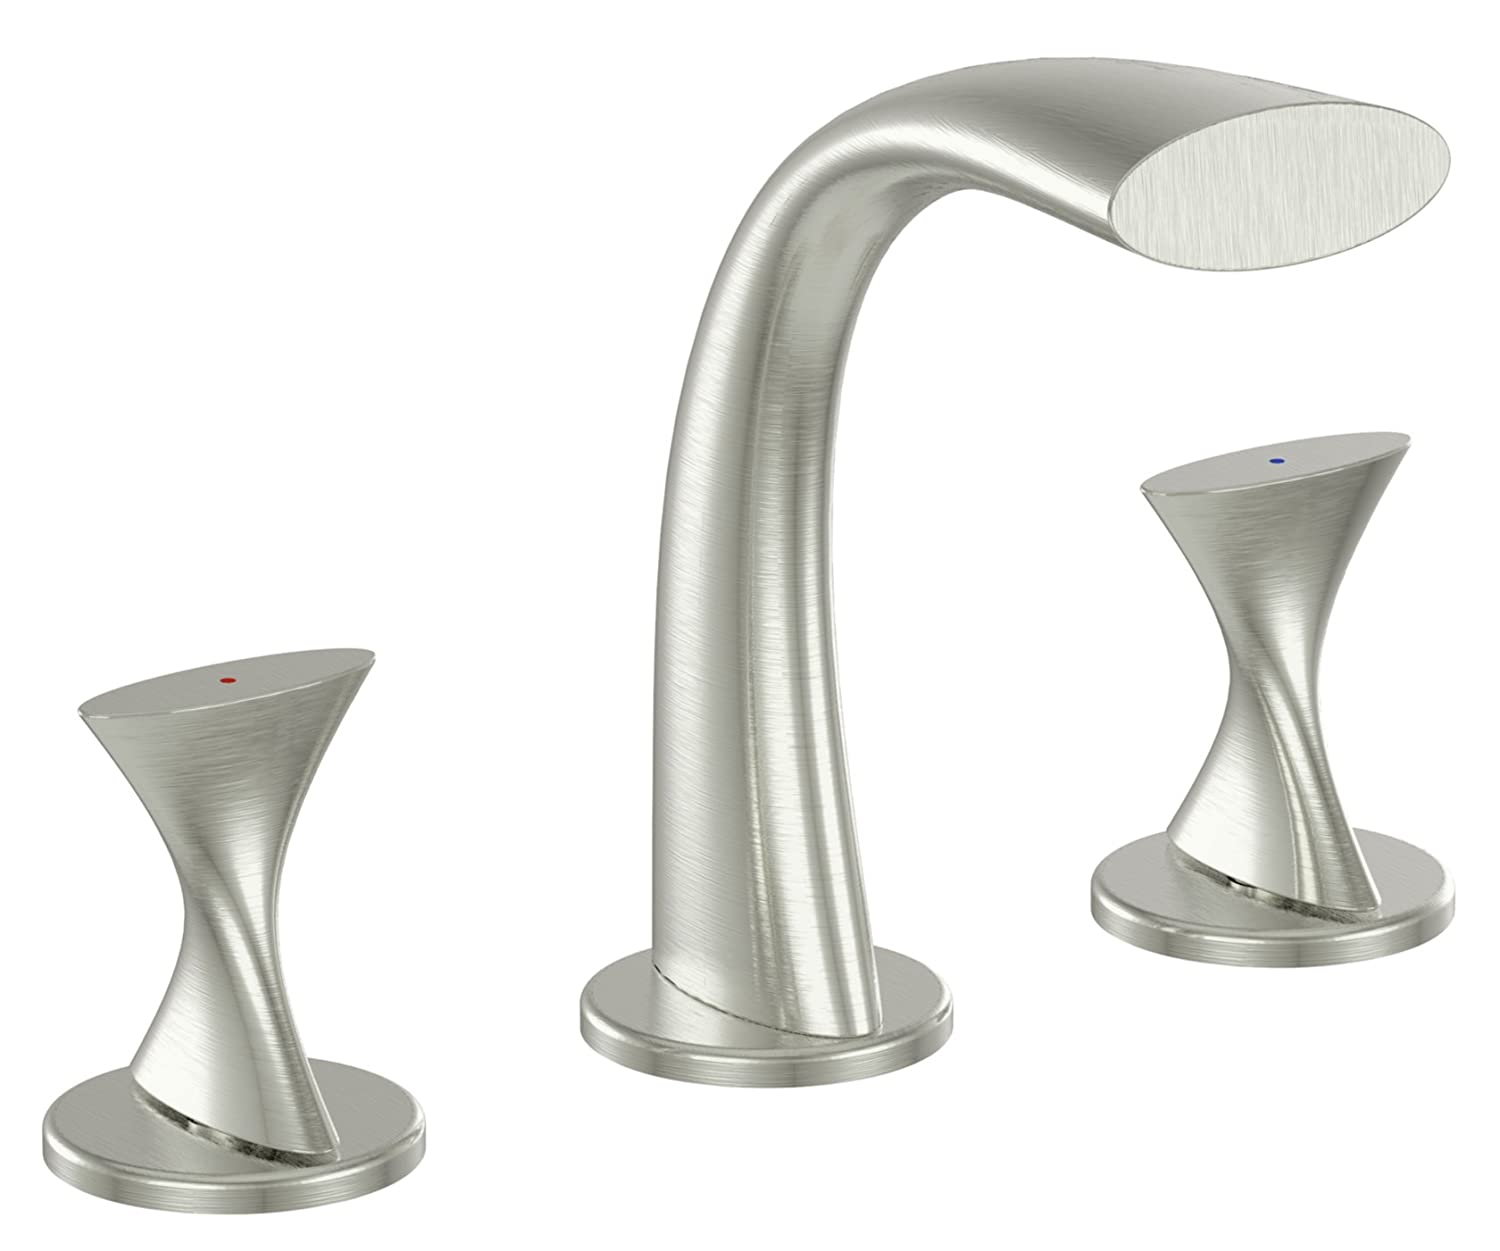 Ultra Faucets UF55513 Twist Collection Two Handle Widespread Bathroom Sink  Faucet, Brushed Nickel   Touch On Bathroom Sink Faucets   Amazon.com